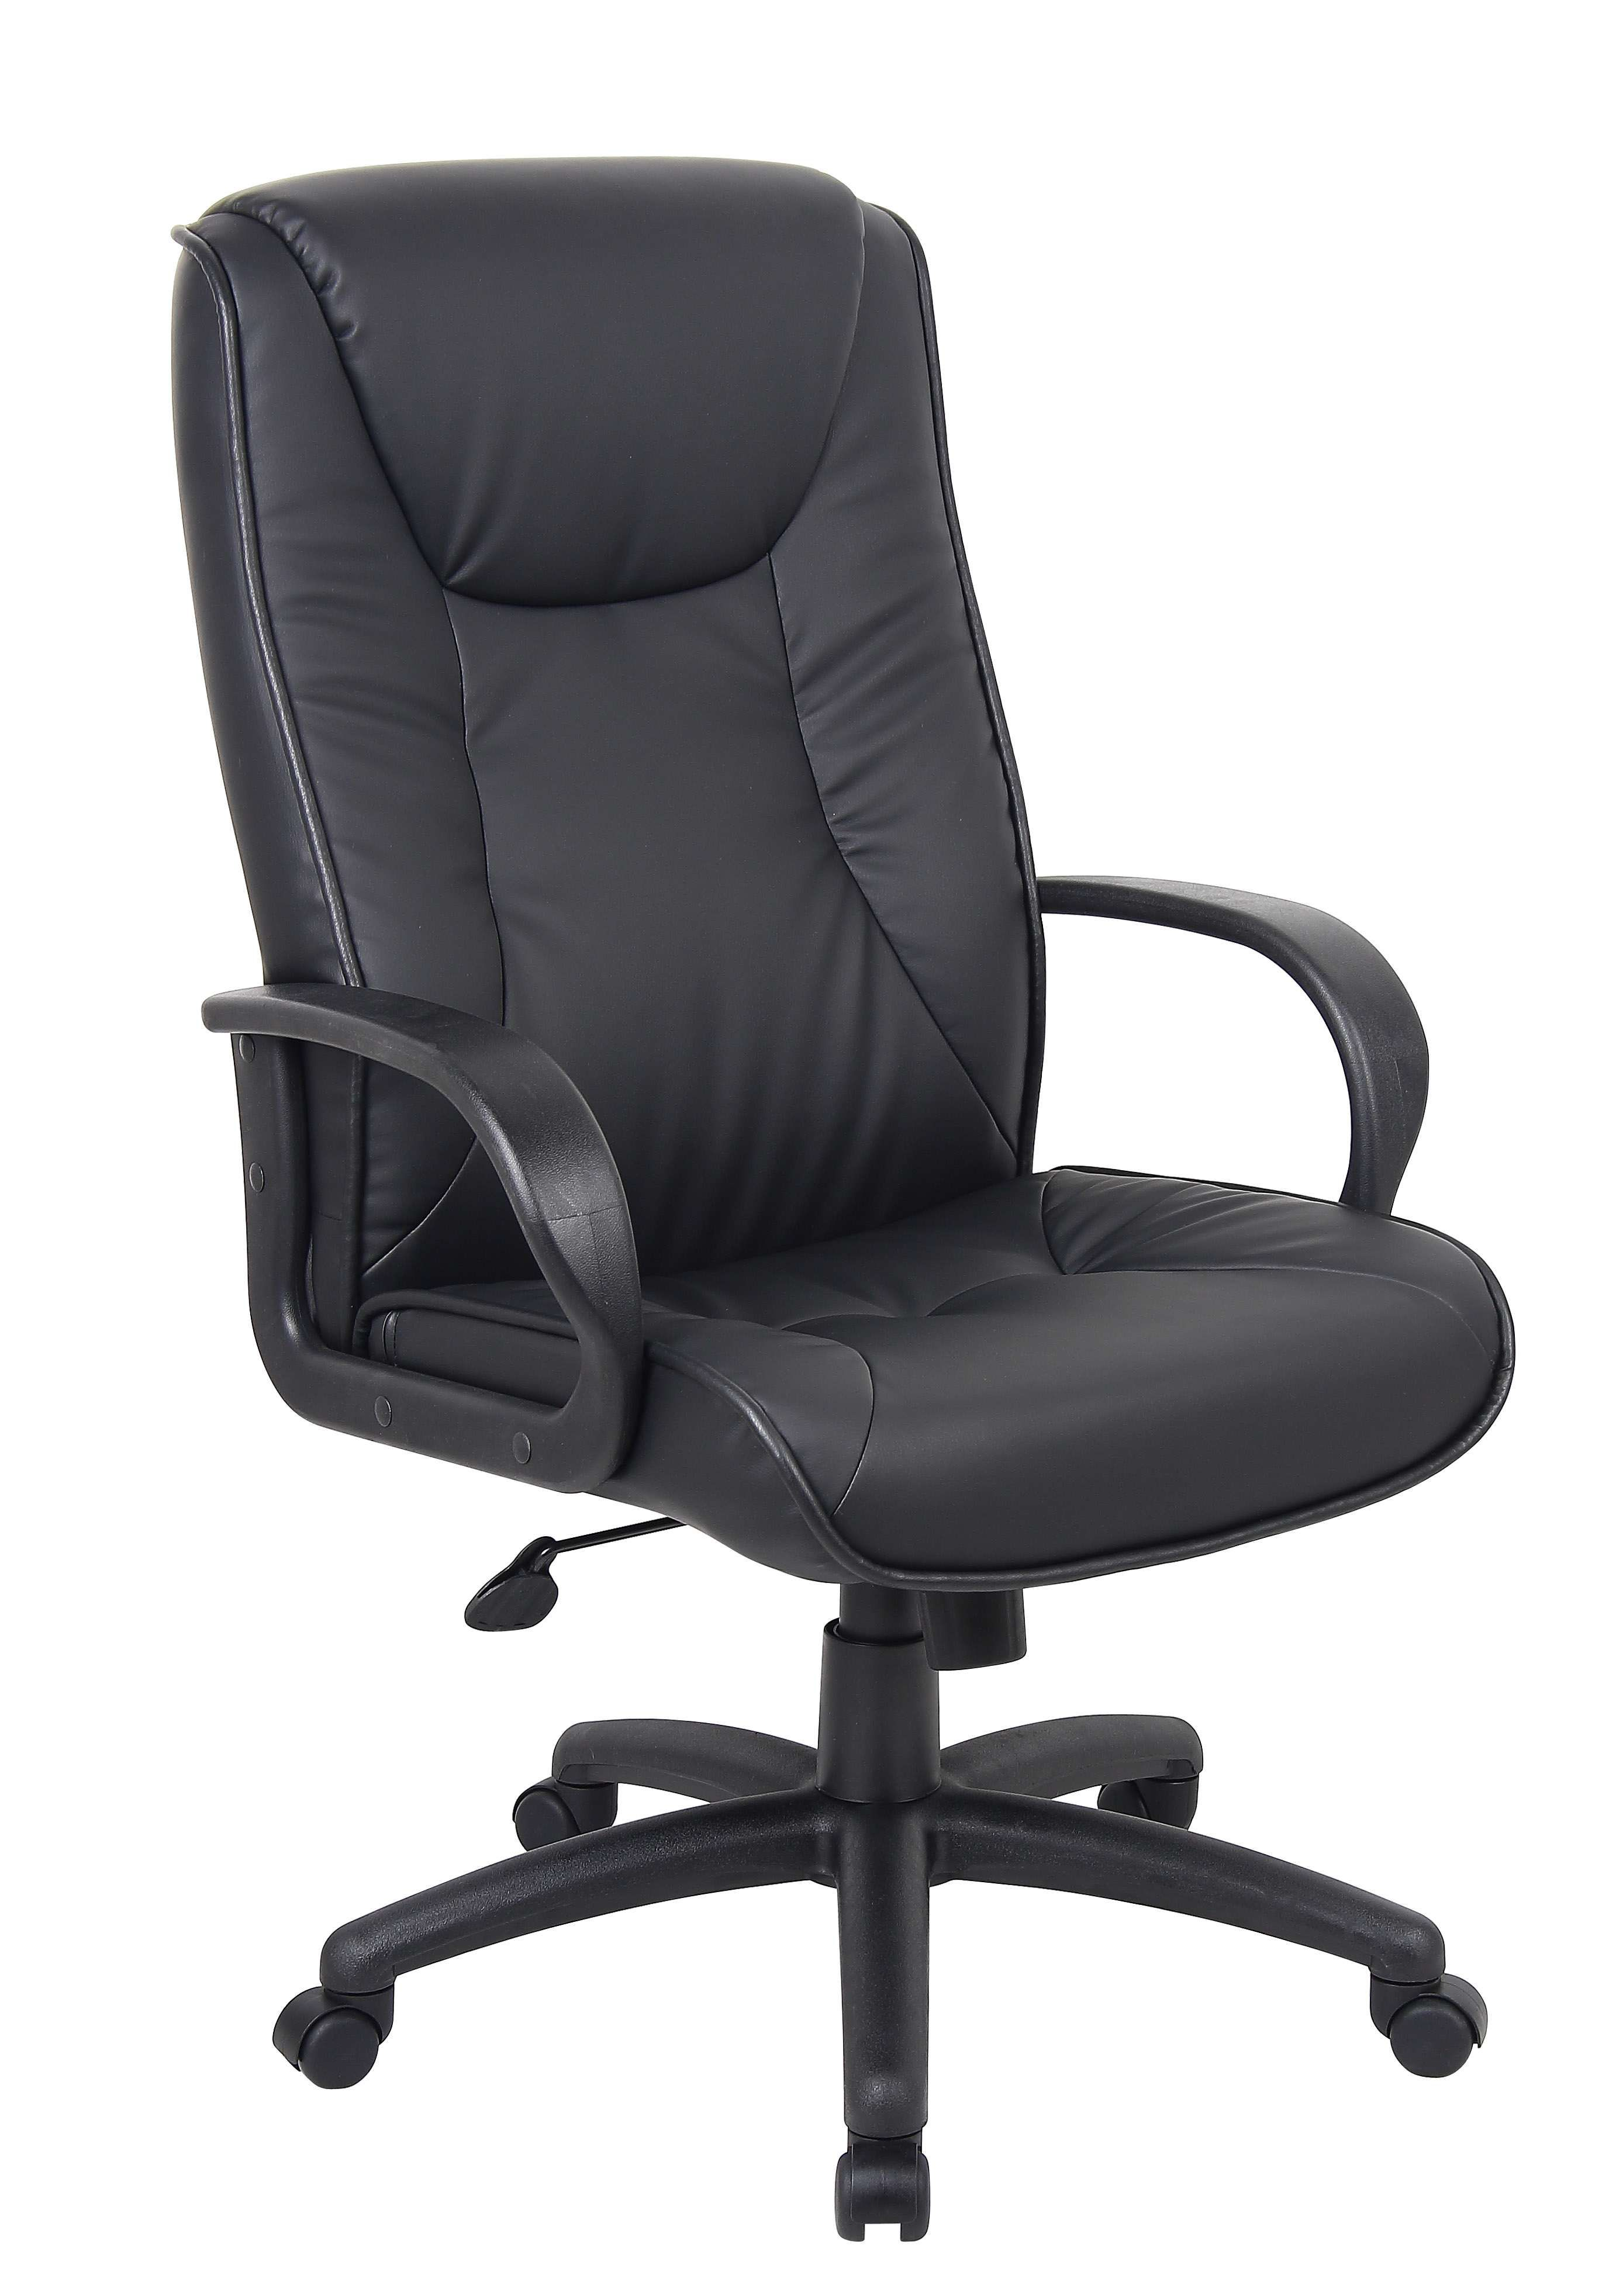 Lowest Price On Boss Office Products Chairs Work Black High Back Chair B9831 Shop Today Black Leather Office Chair Leather Office Chair Boss Chair